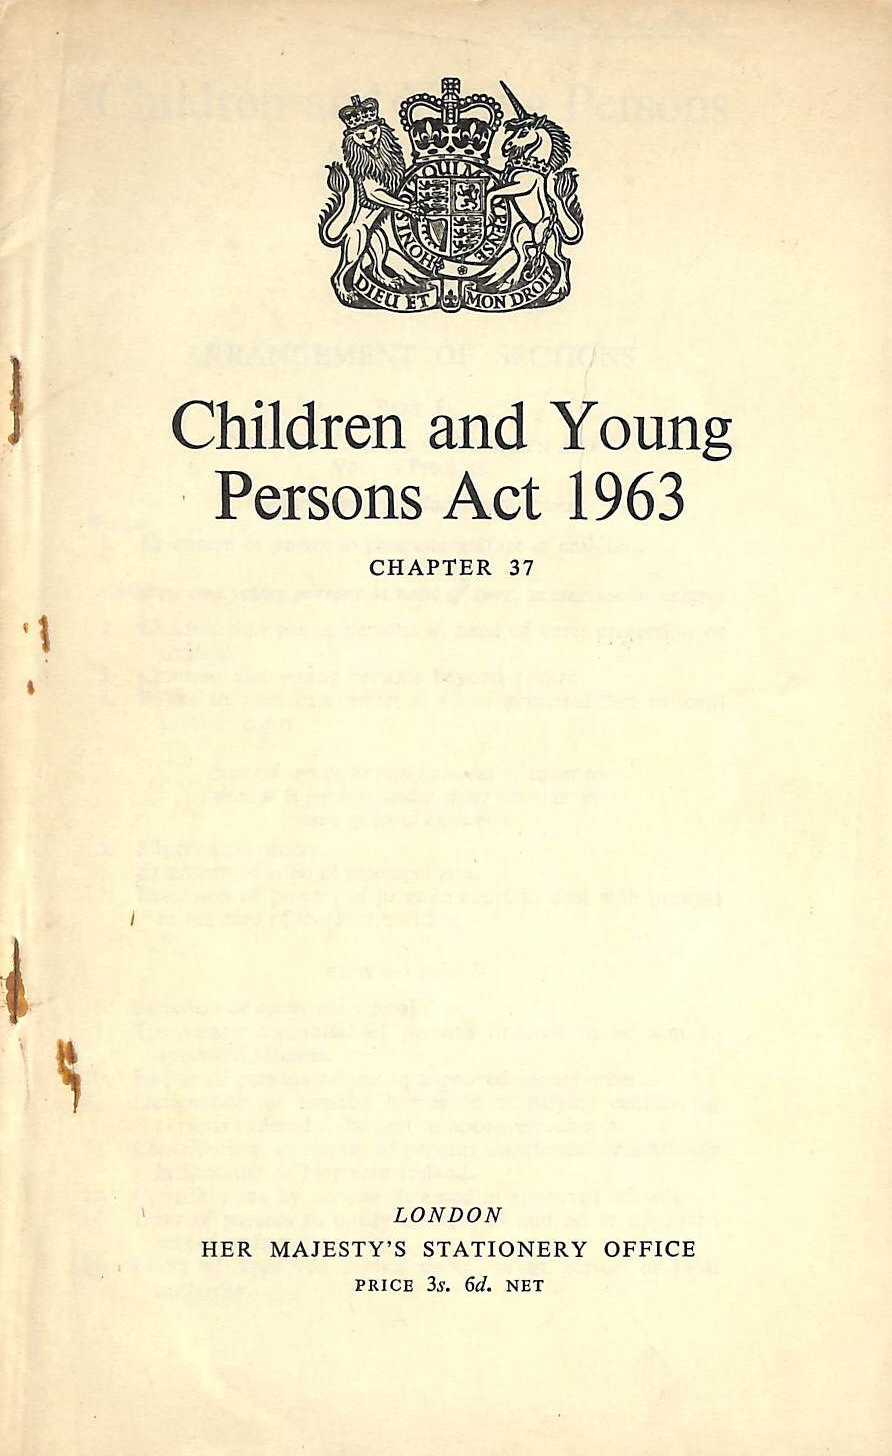 HMSO - Children and Young Persons Act 1963